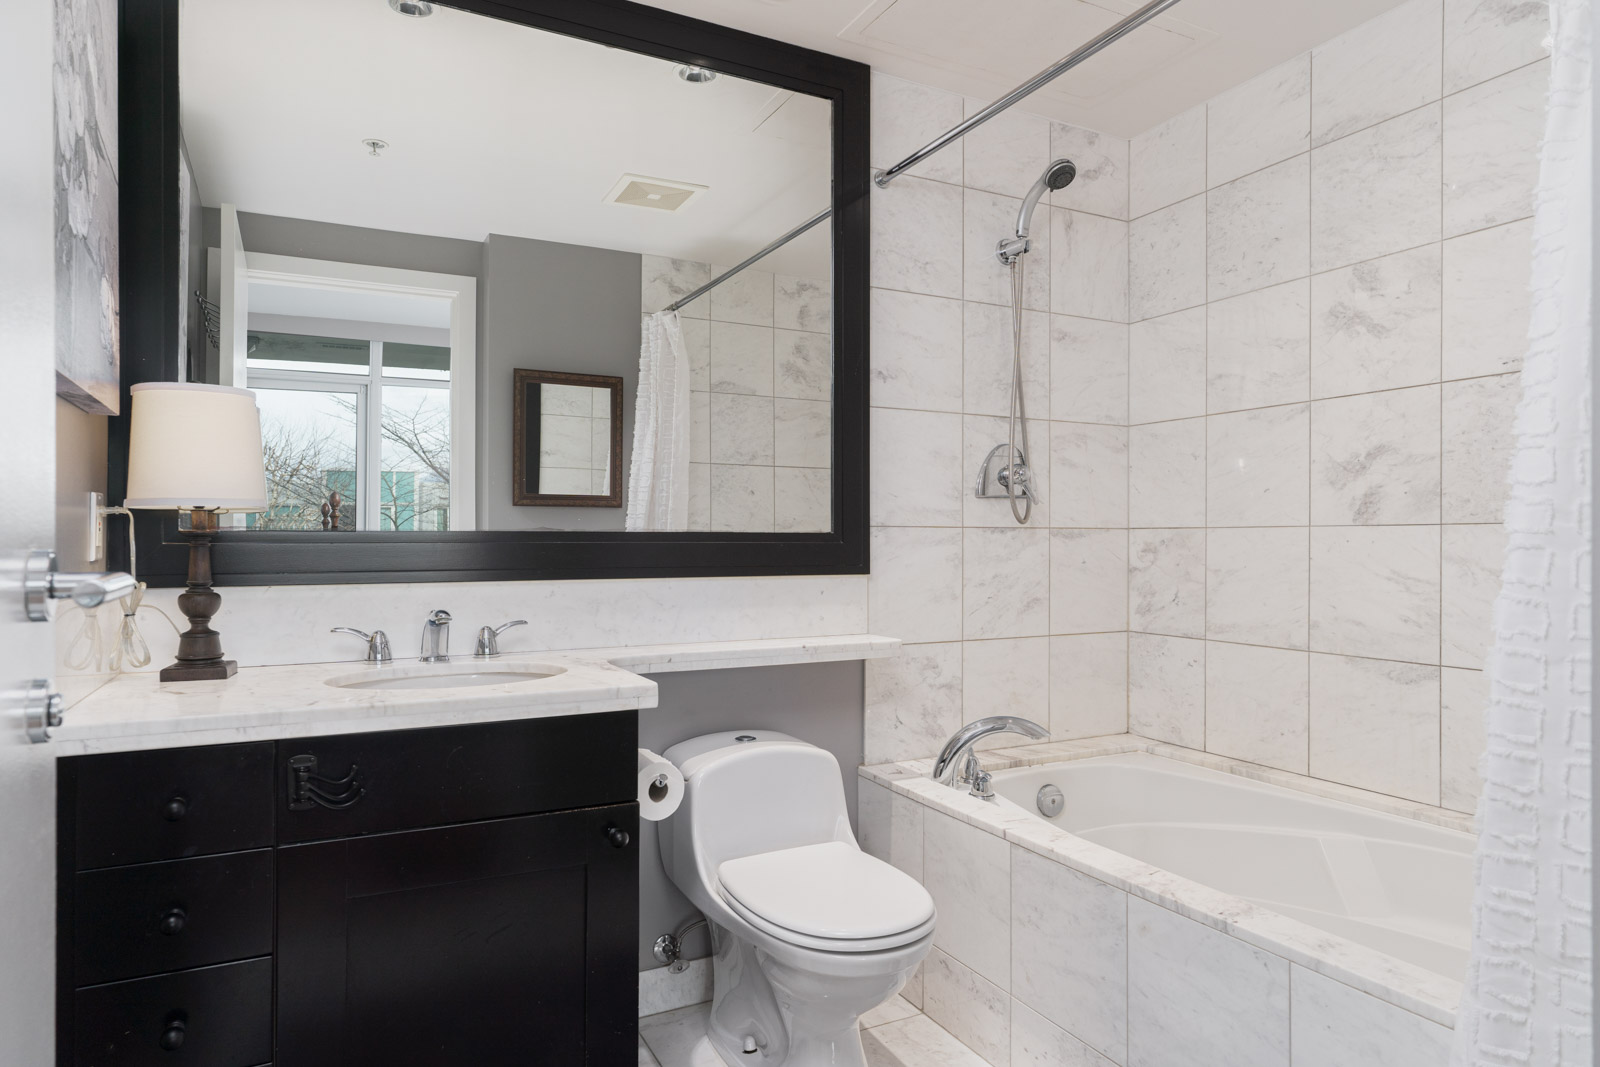 bathroom with wooden floor in rental house at Downtown neighbourhood of Vancouver